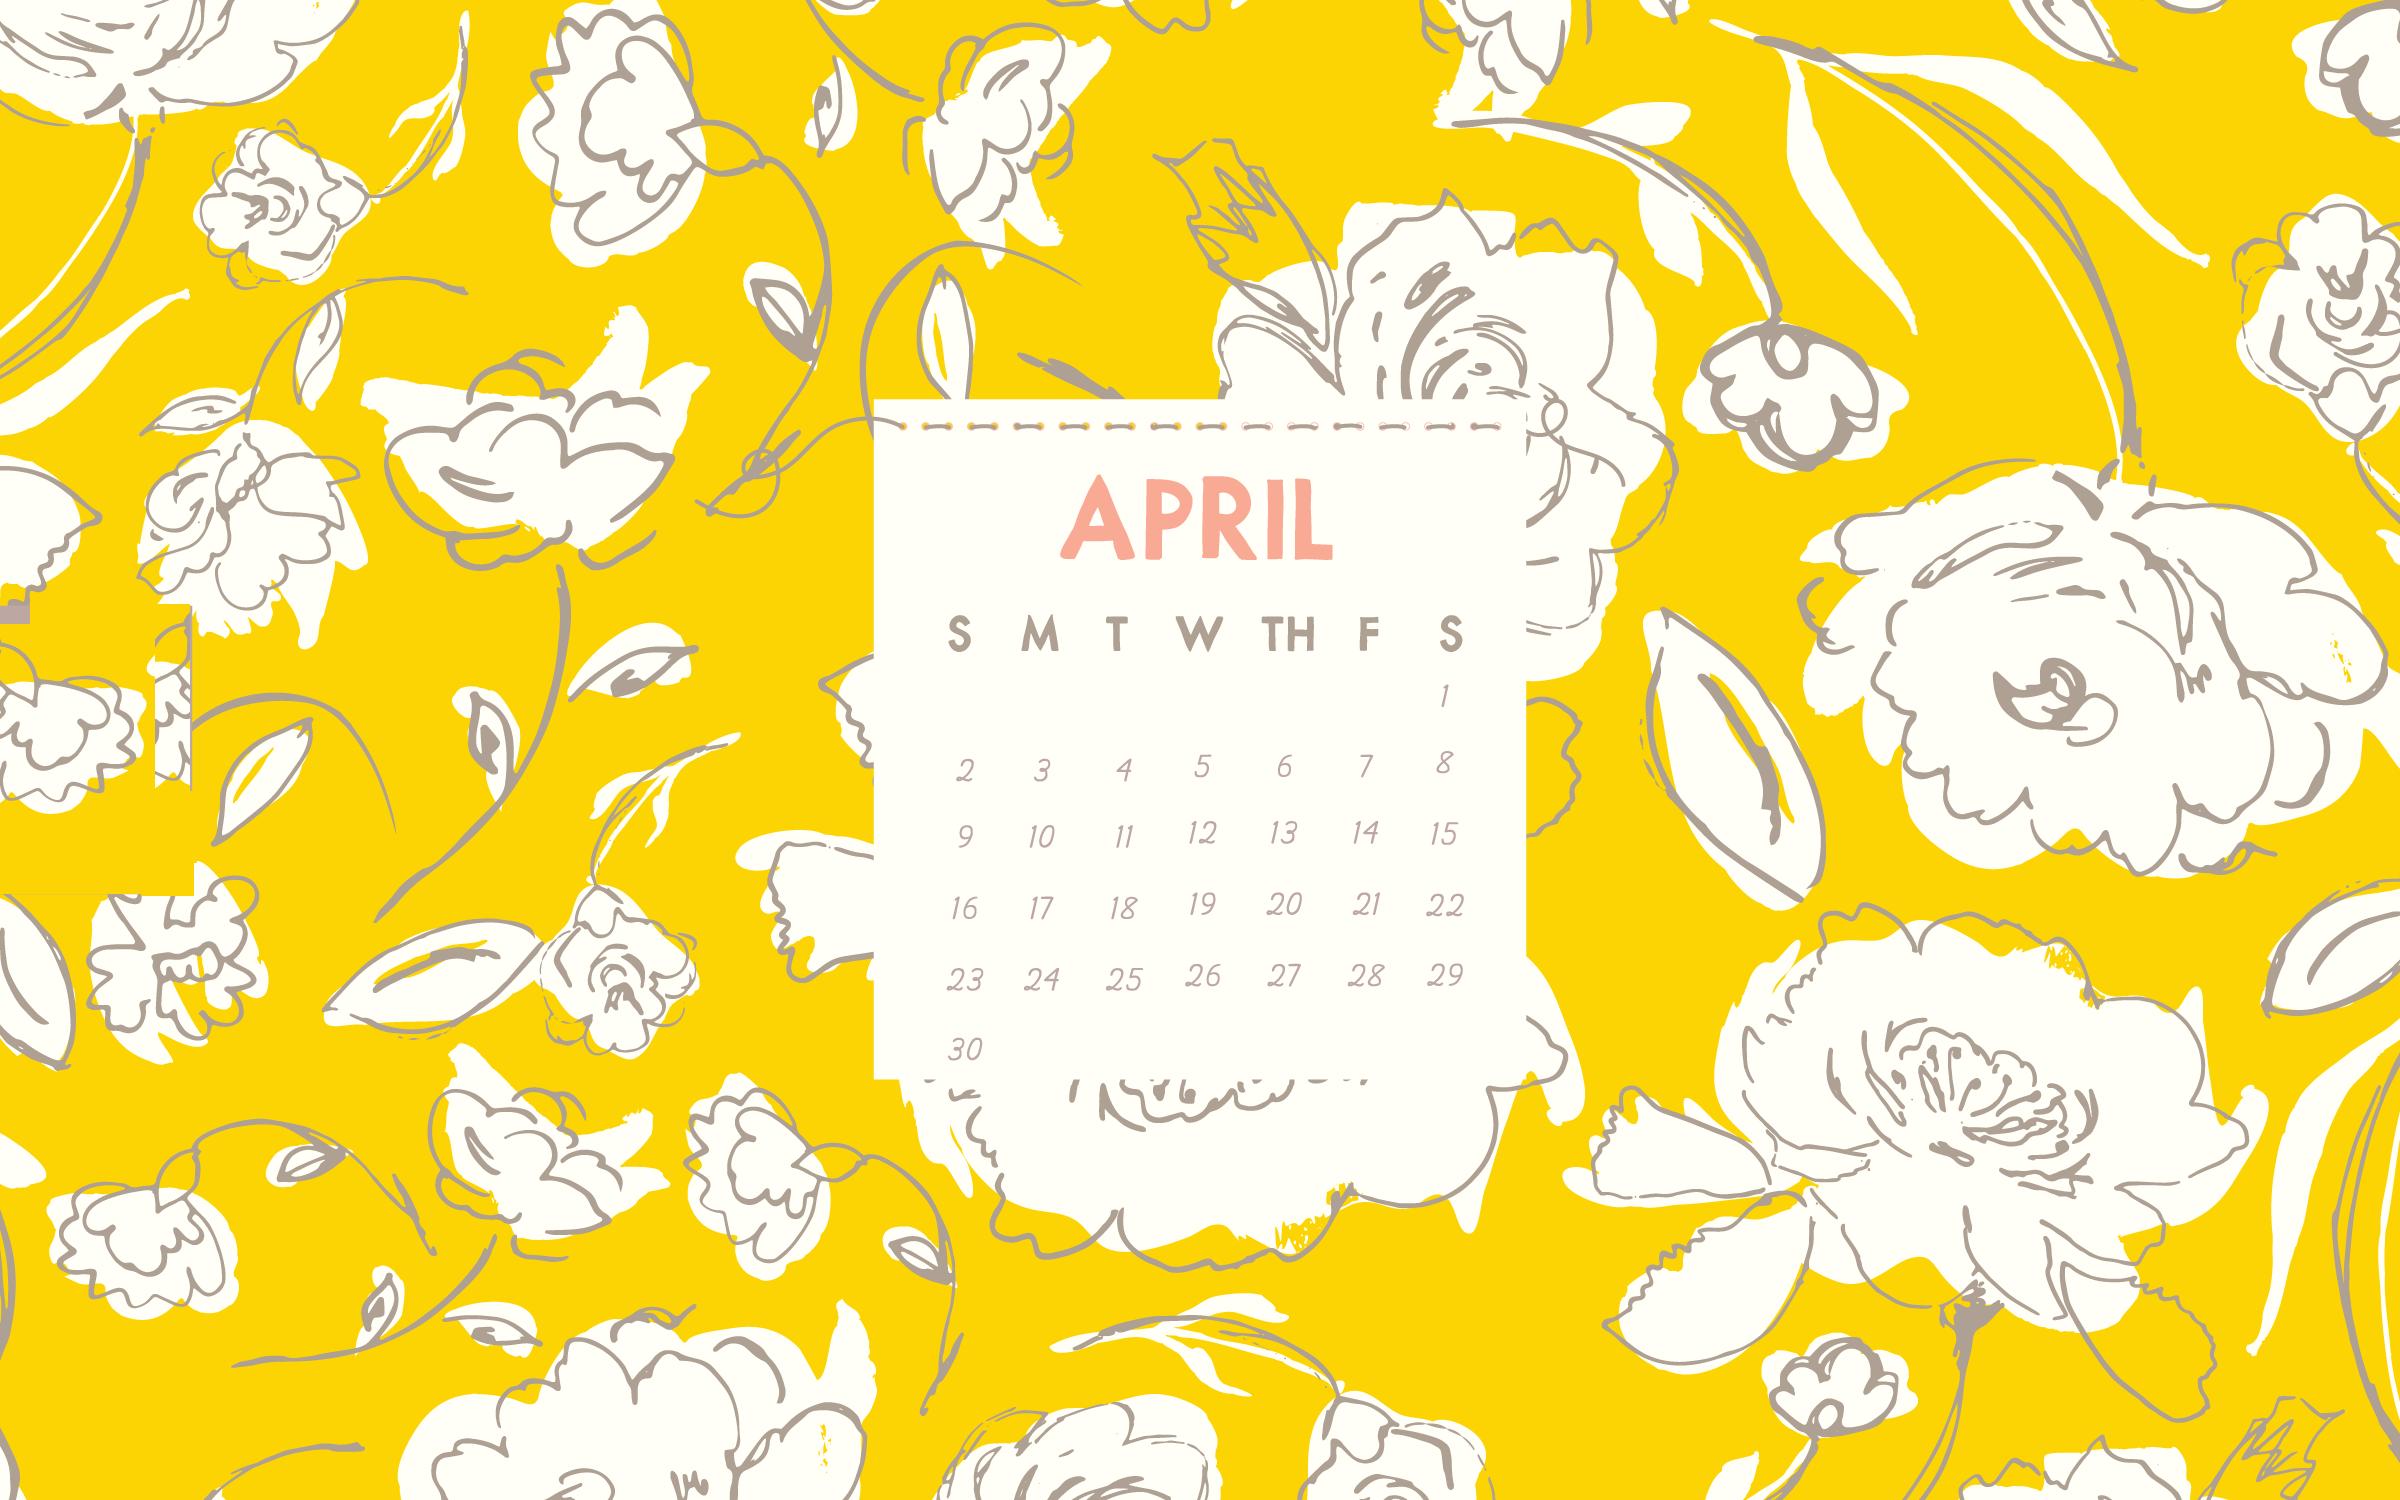 april 2018 desktop background calendar